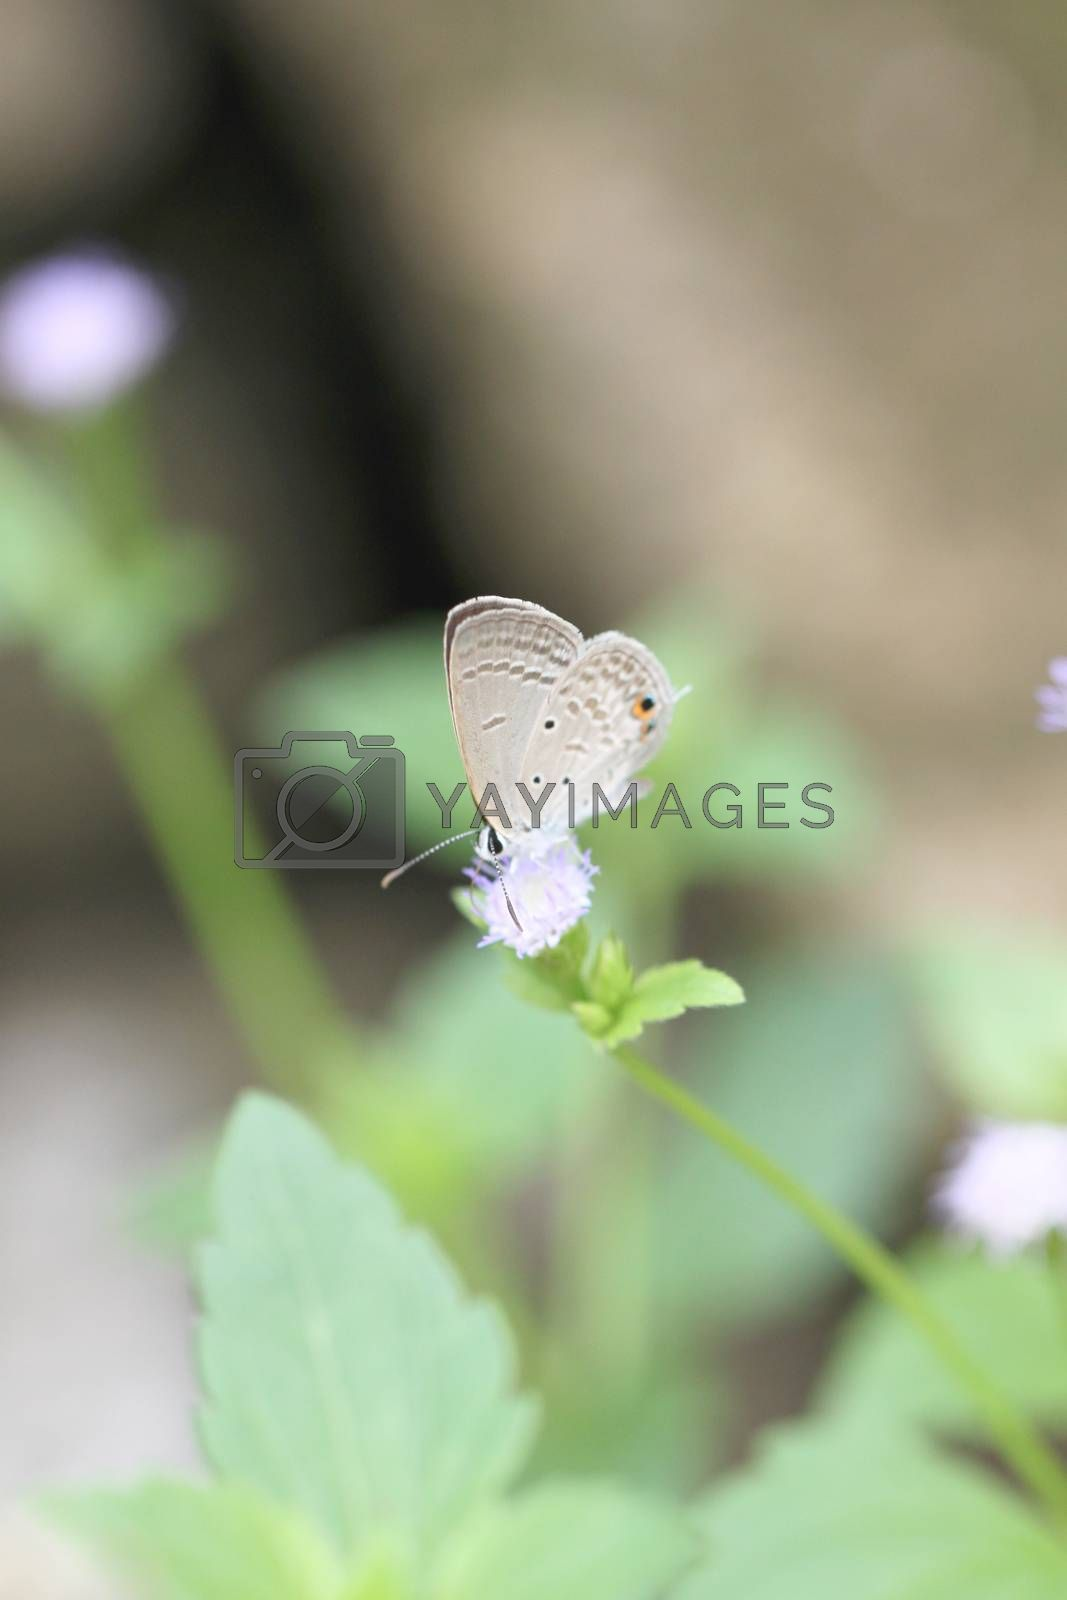 brown butterfly on the flower in garden.